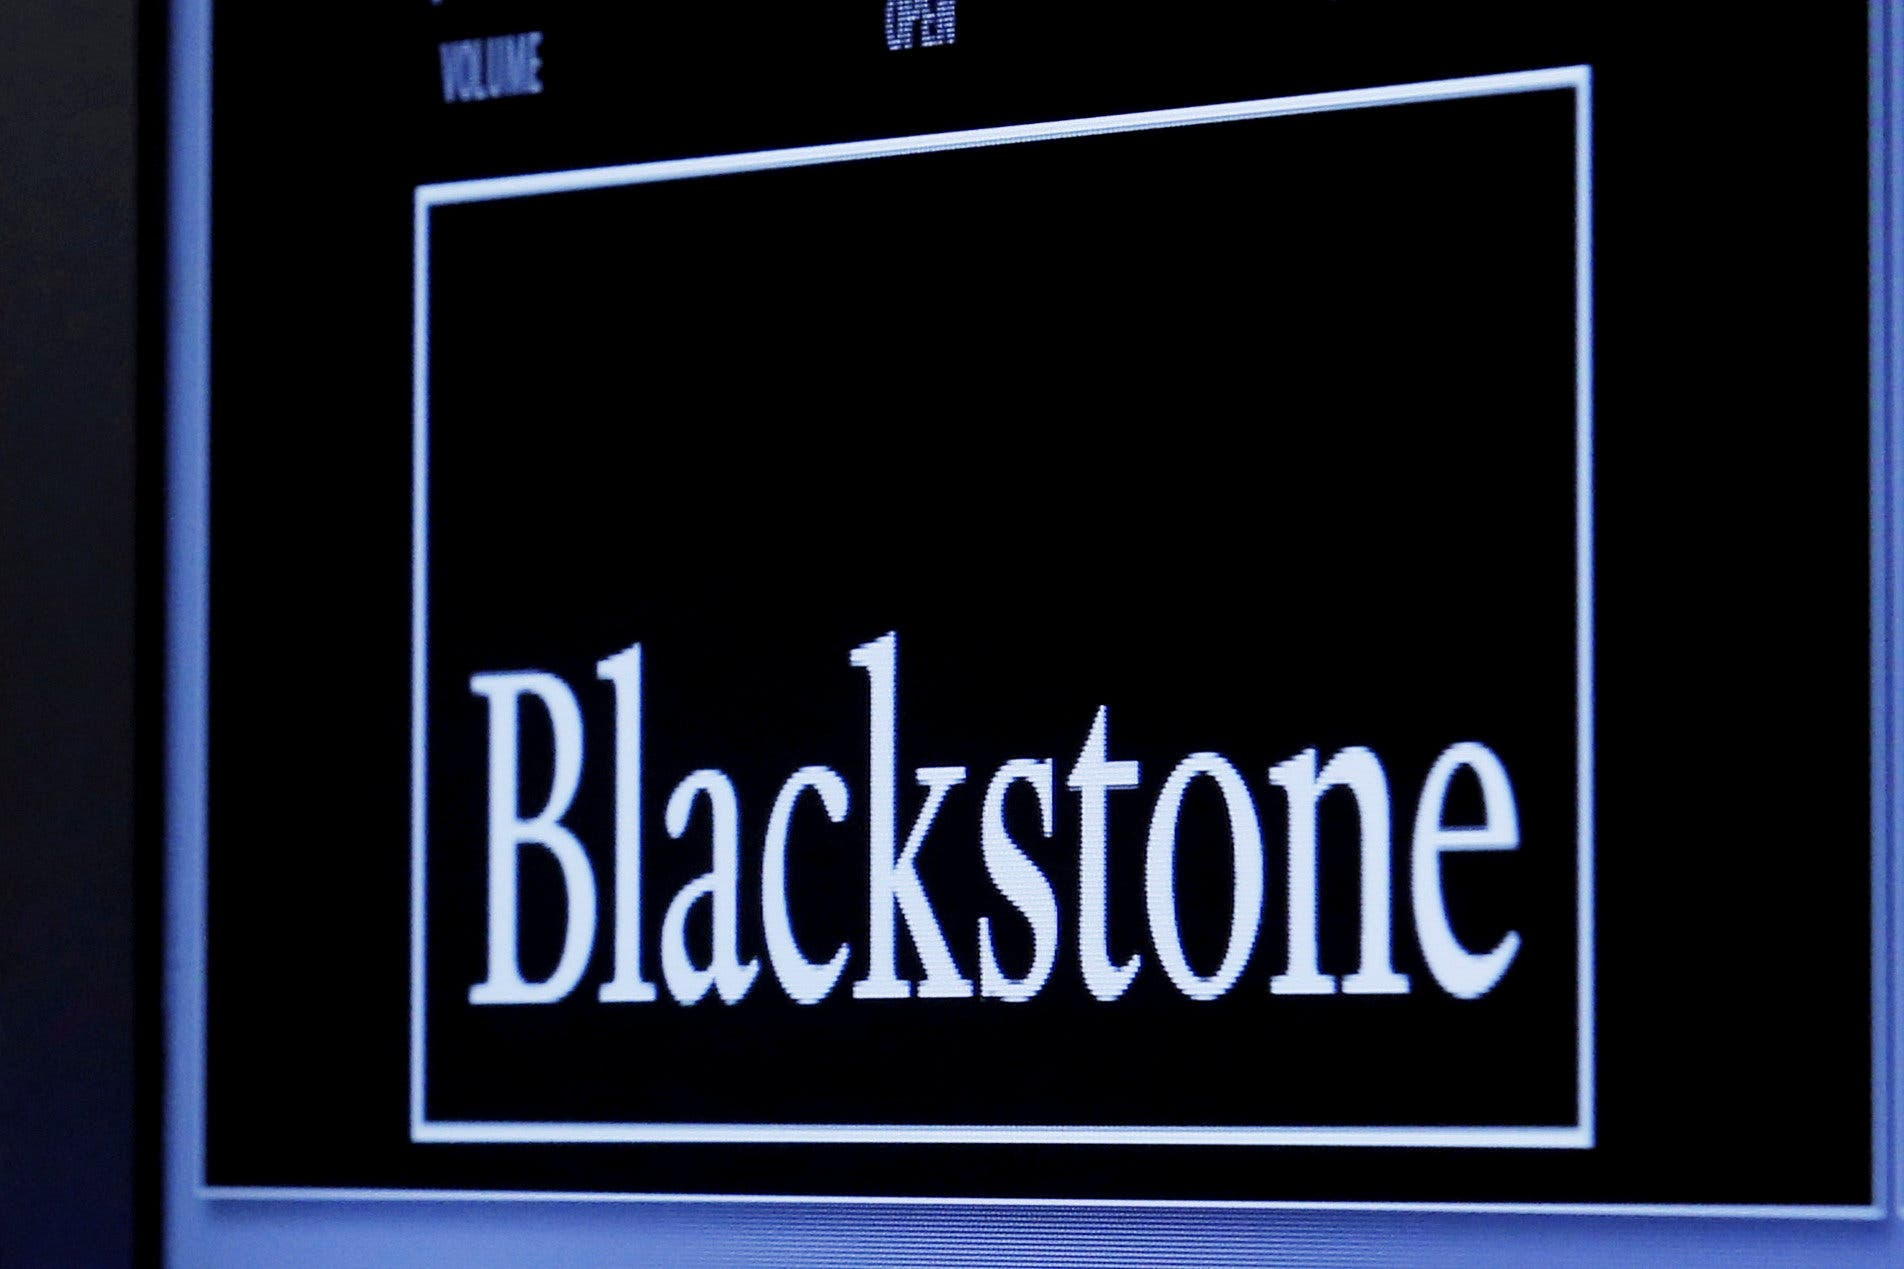 The logo of Blackstone Group is displayed at the post where it is traded on the floor of the New York Stock Exchange. (Reuters)